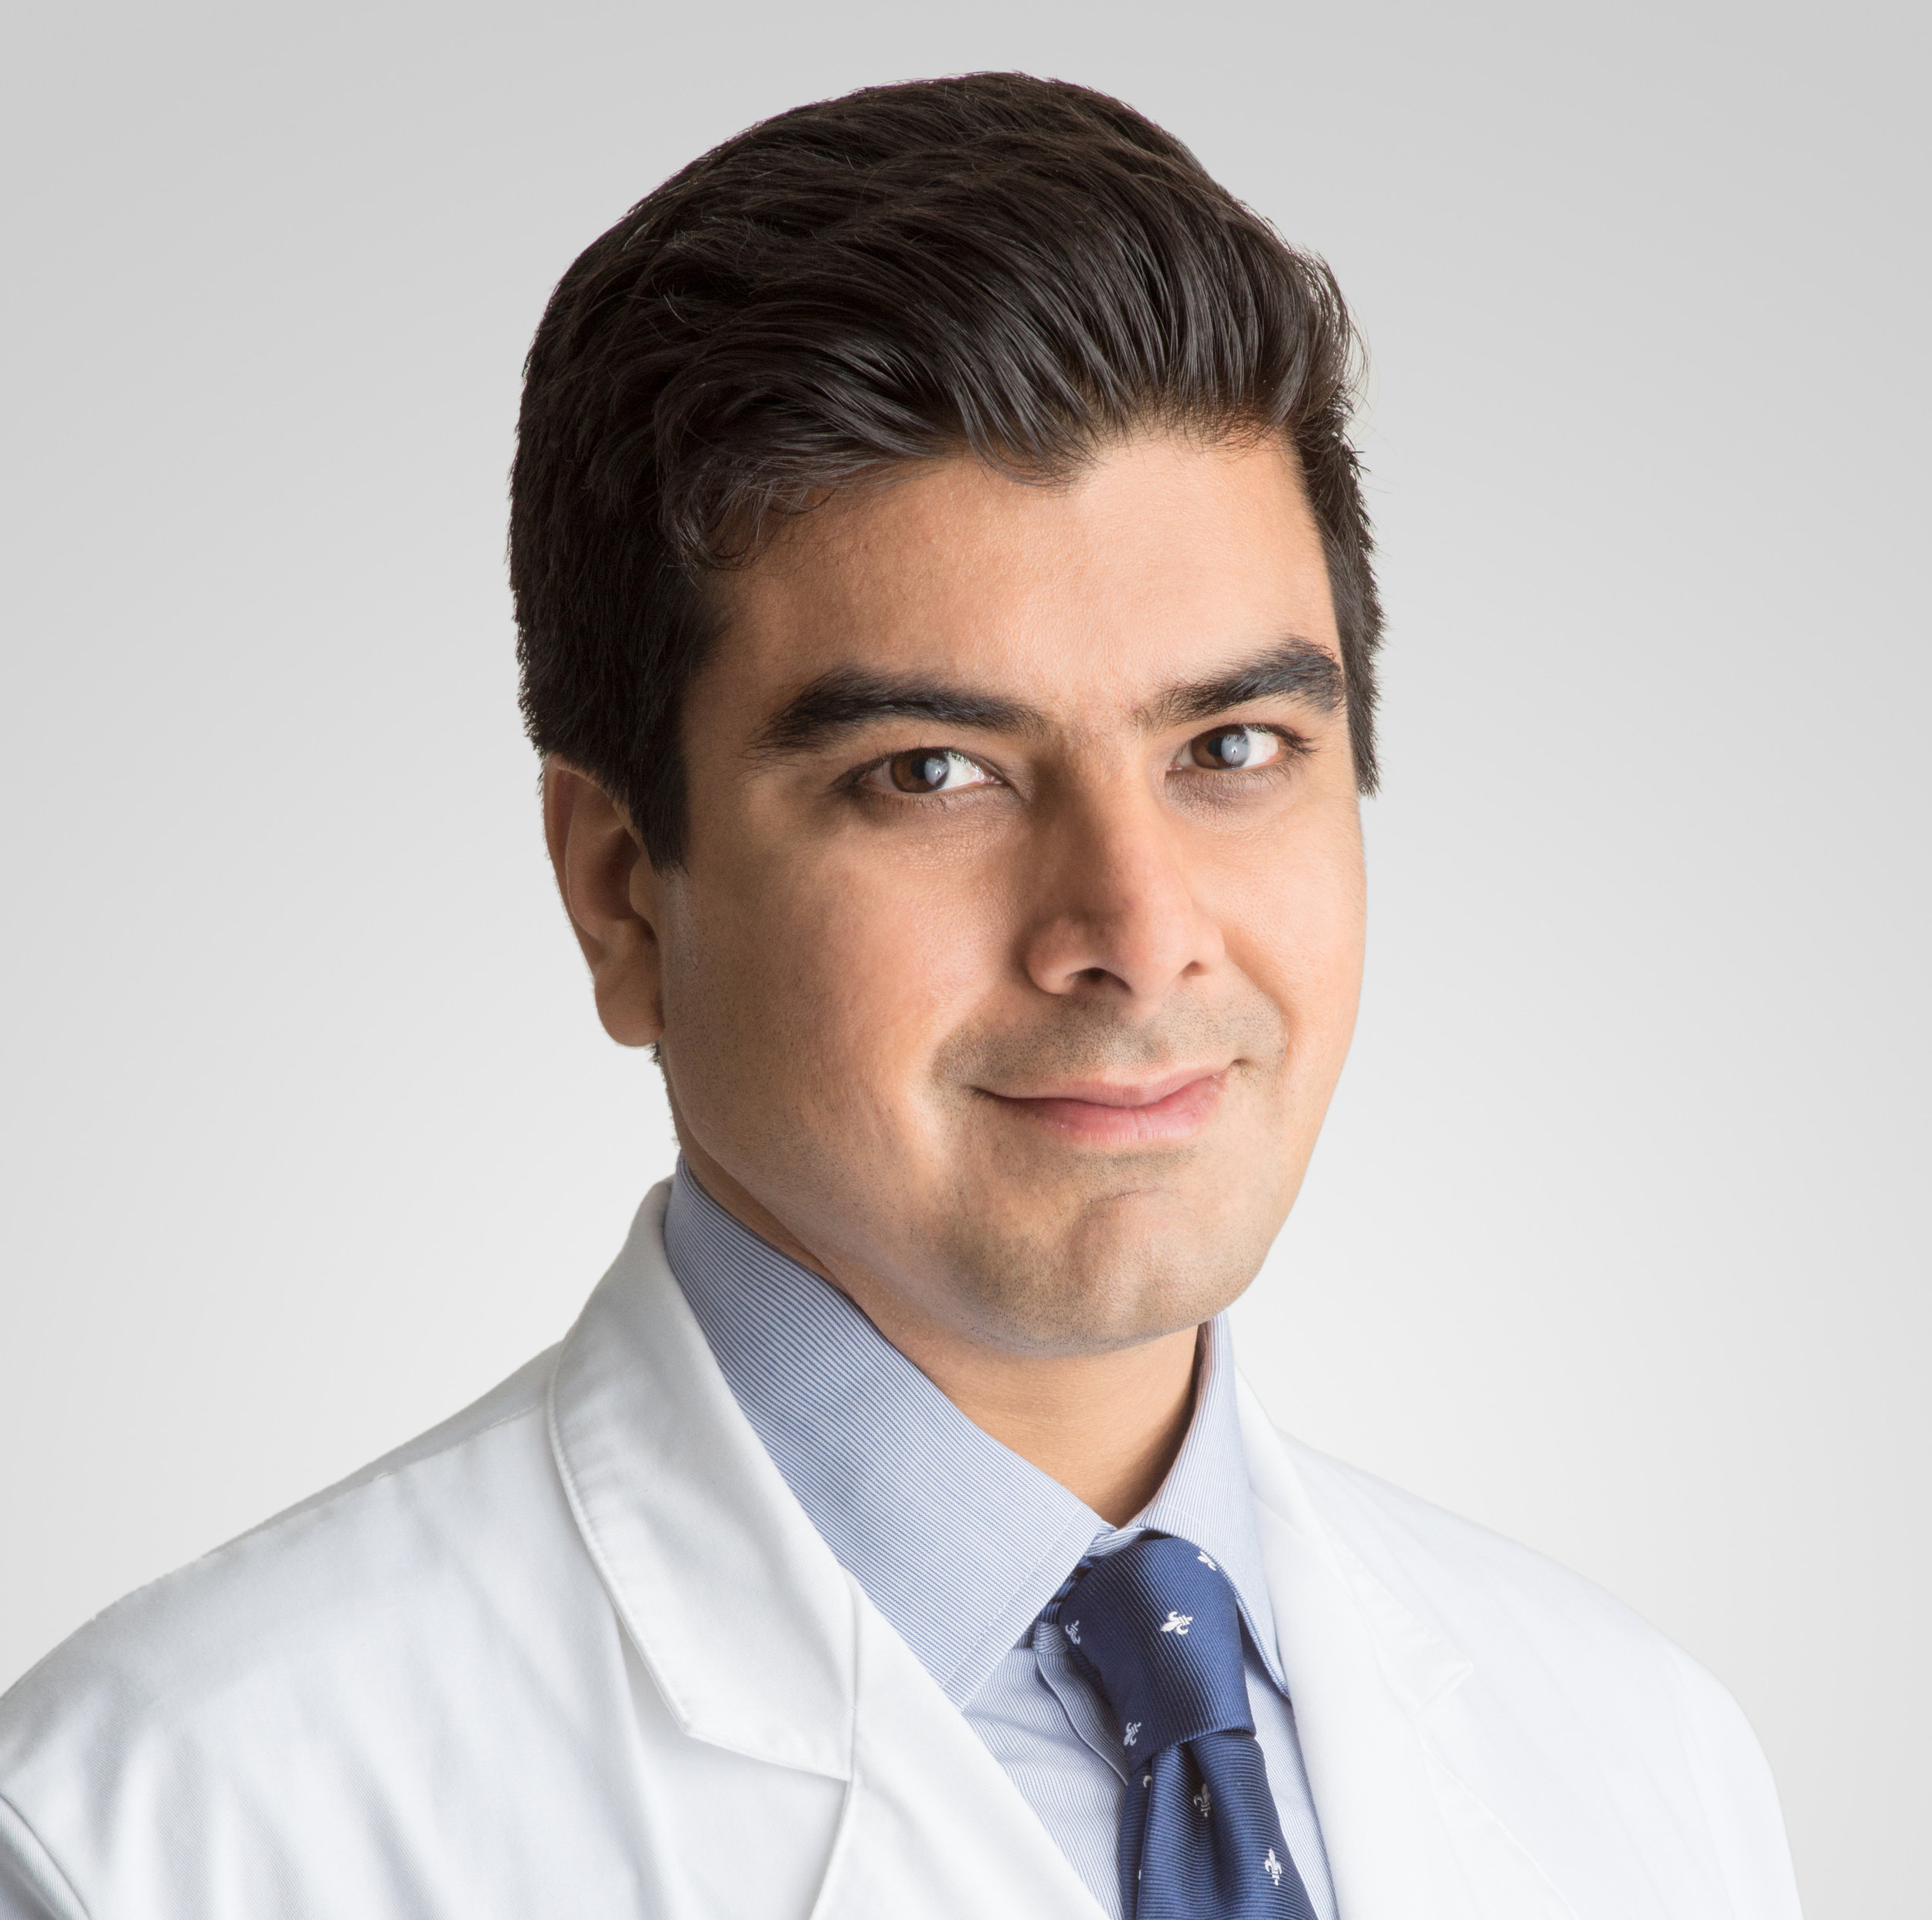 Karan Johar, MD - DOUBLE-BOARD CERTIFIED PAIN MANAGEMENT PHYSICIANREGENERATIVE SPINE & PAIN MANAGEMENTMEDICAL DIRECTOR